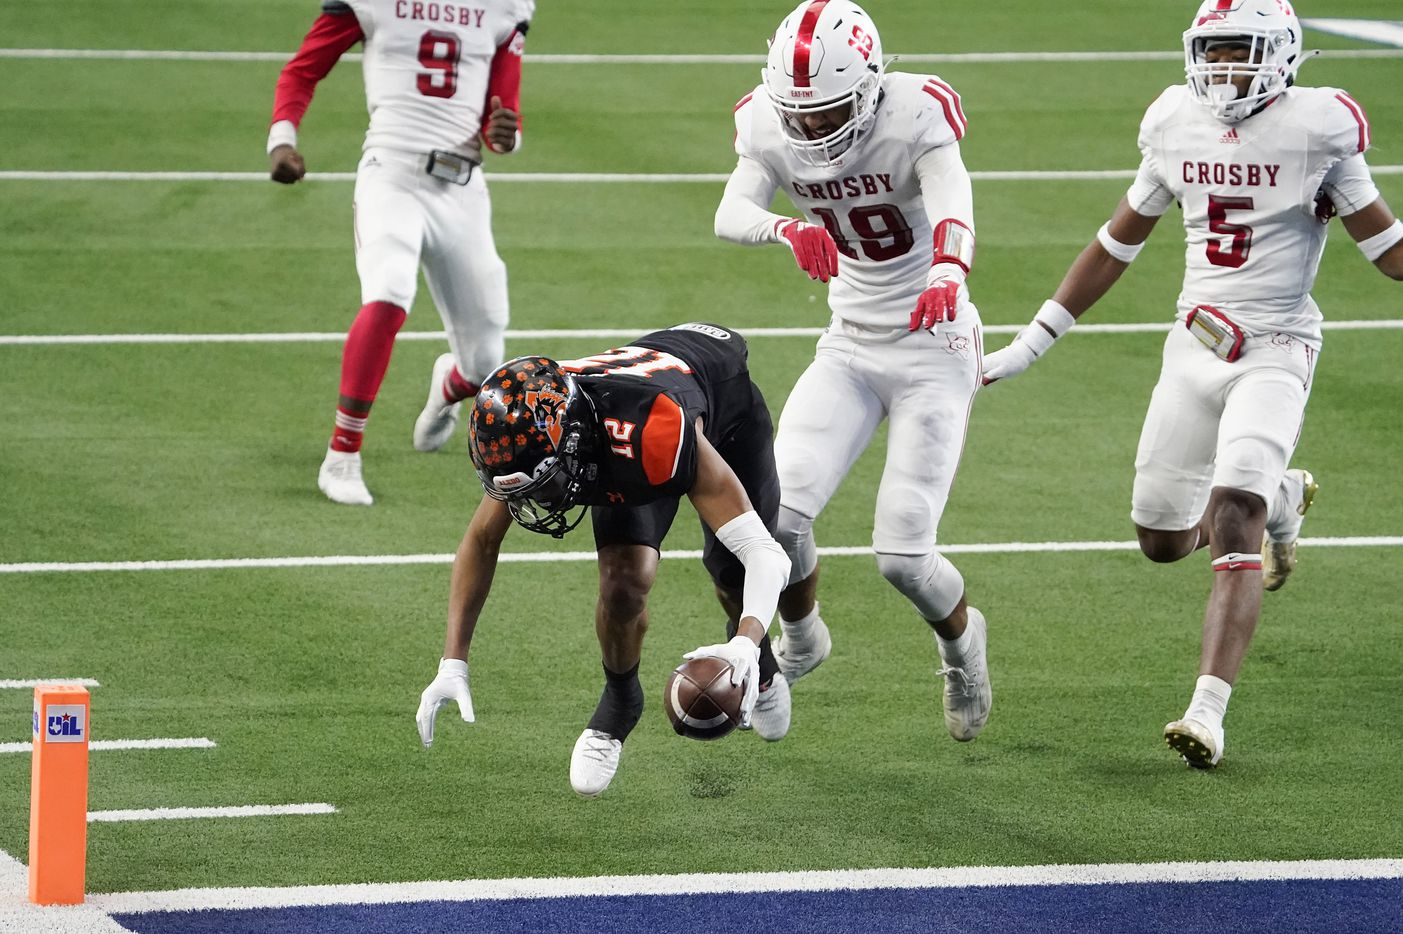 Aledo wide receiver Brian Fleming (12) scores on a 20-yard touchdown reception during the second half of a 56-21 victory over Crosby to win the Class 5A Division II state football championship game at AT&T Stadium on Friday, Jan. 15, 2021, in Arlington. The victory gave the Bearcats the 10th state championship in school history. (Smiley N. Pool/The Dallas Morning News)